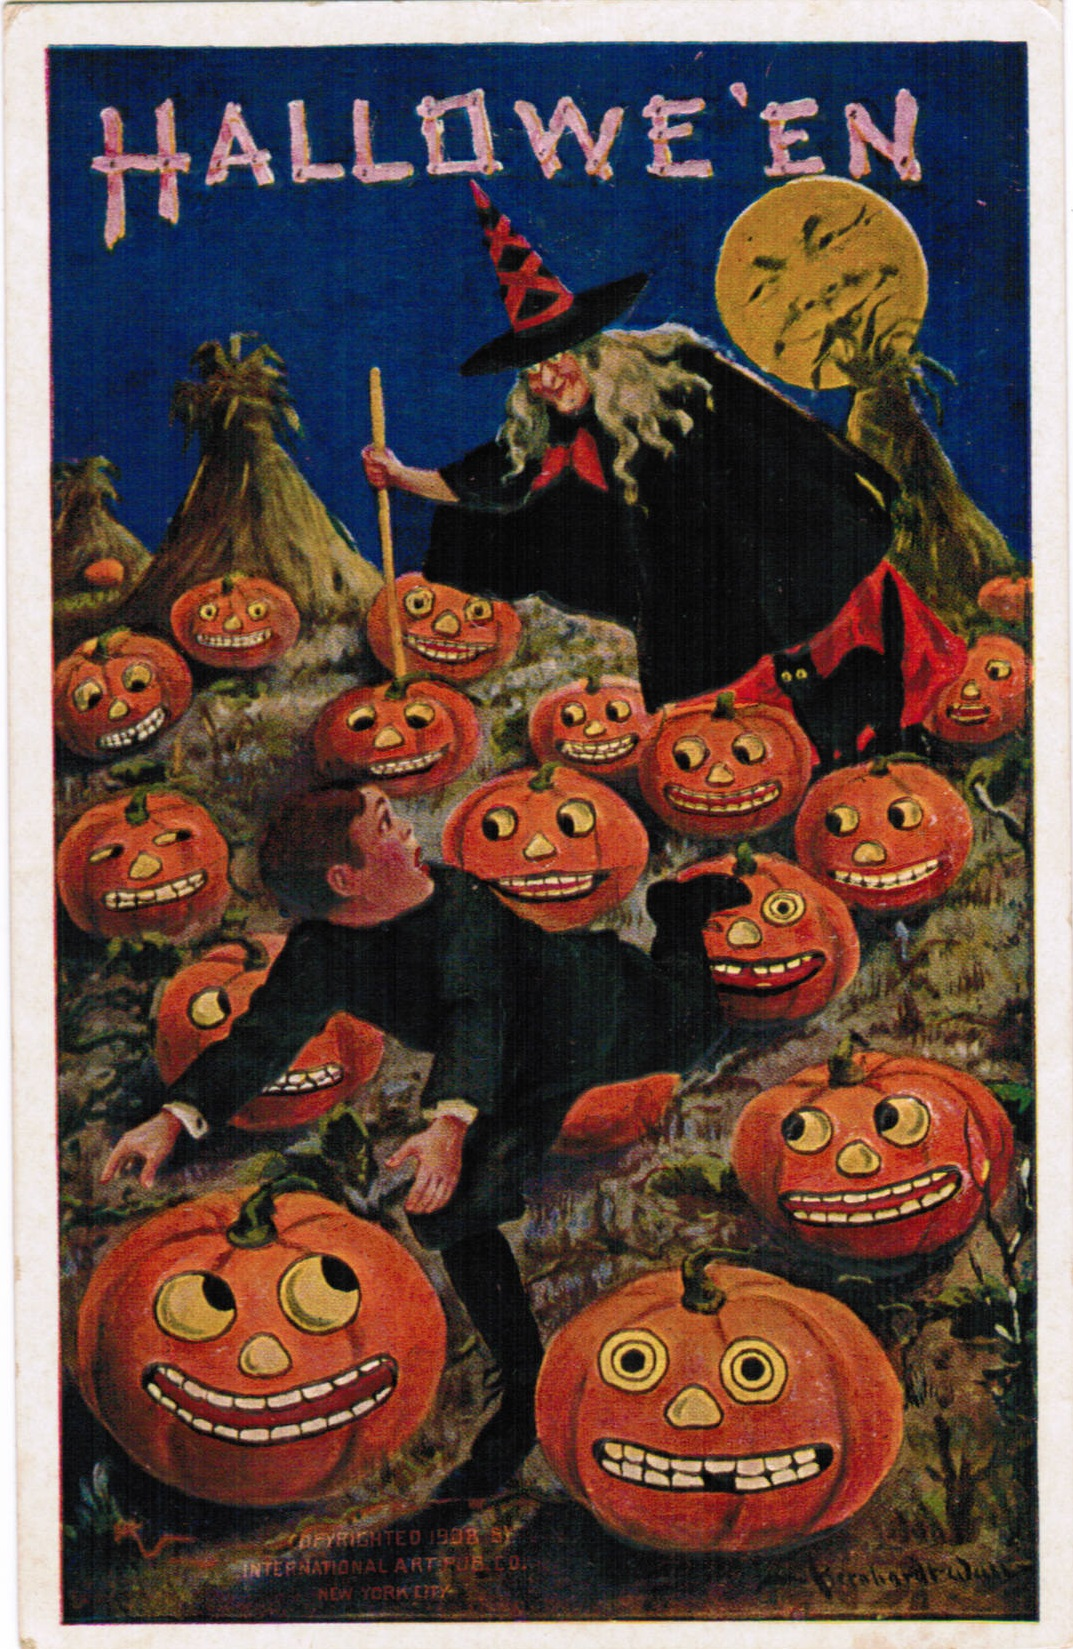 Vintage Halloween Post Cards for Your Treat Today